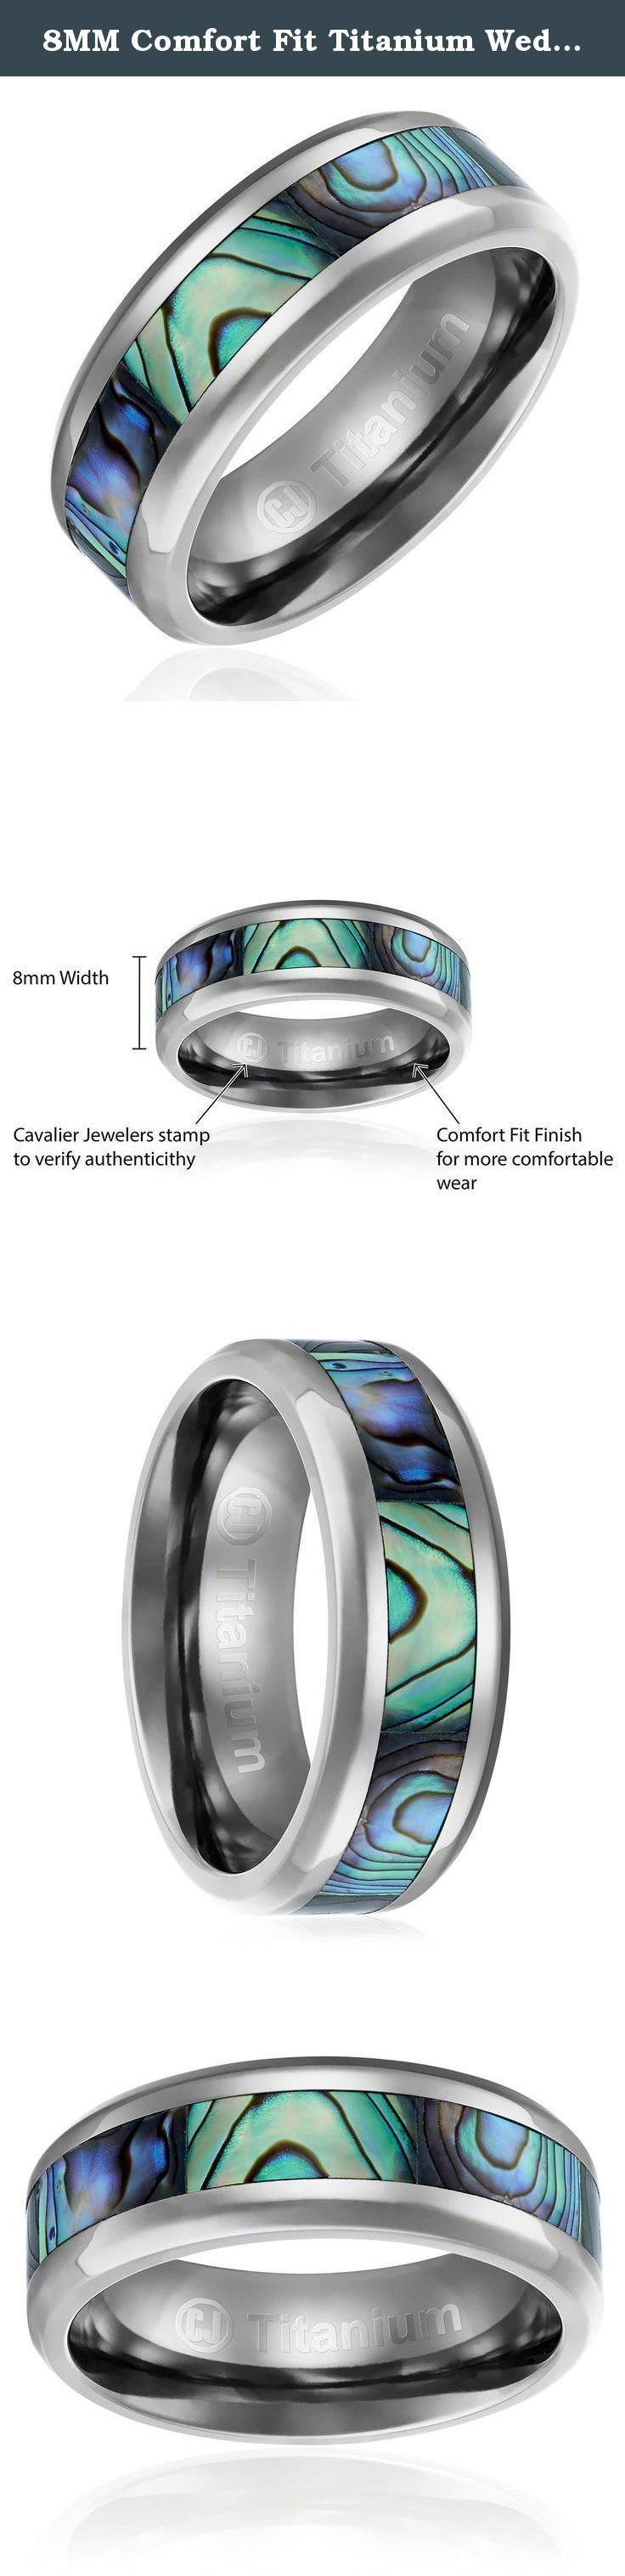 Product spotlight meet the eatsmart precision digital bathroom scale - 8mm Comfort Fit Titanium Wedding Band Engagement Ring With Abalone Shell Inlay Beveled Edges